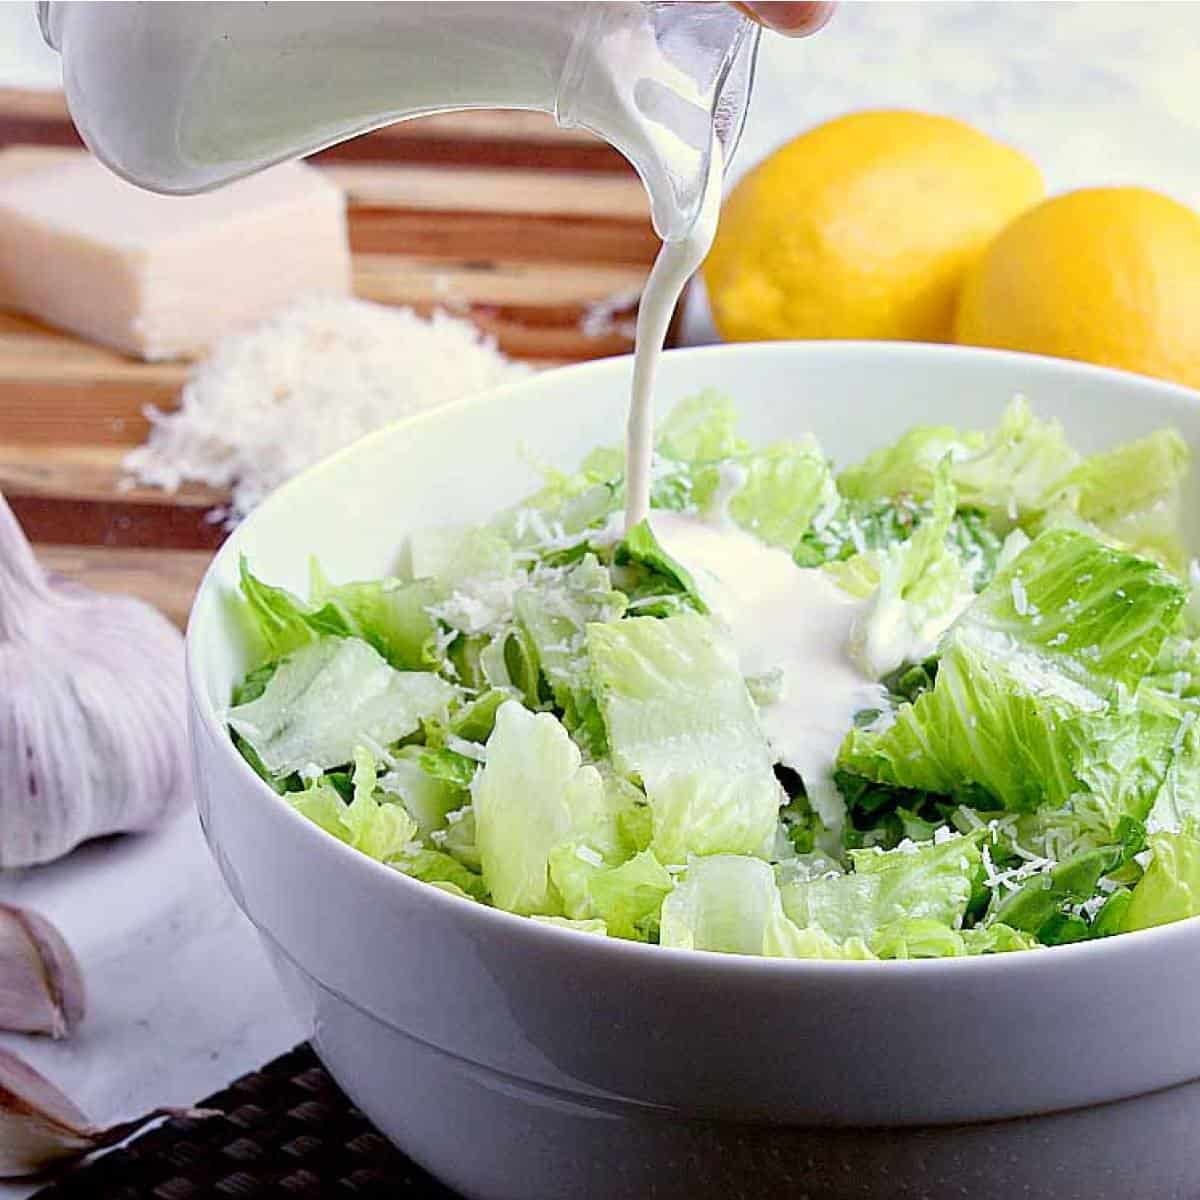 Creamy Caesar Dressing without Anchovy Paste. Extra creamy caesar dressing loaded with parmesan, garlic and lemony freshness. A cook book essential, this dressing is sure to light up your taste buds!